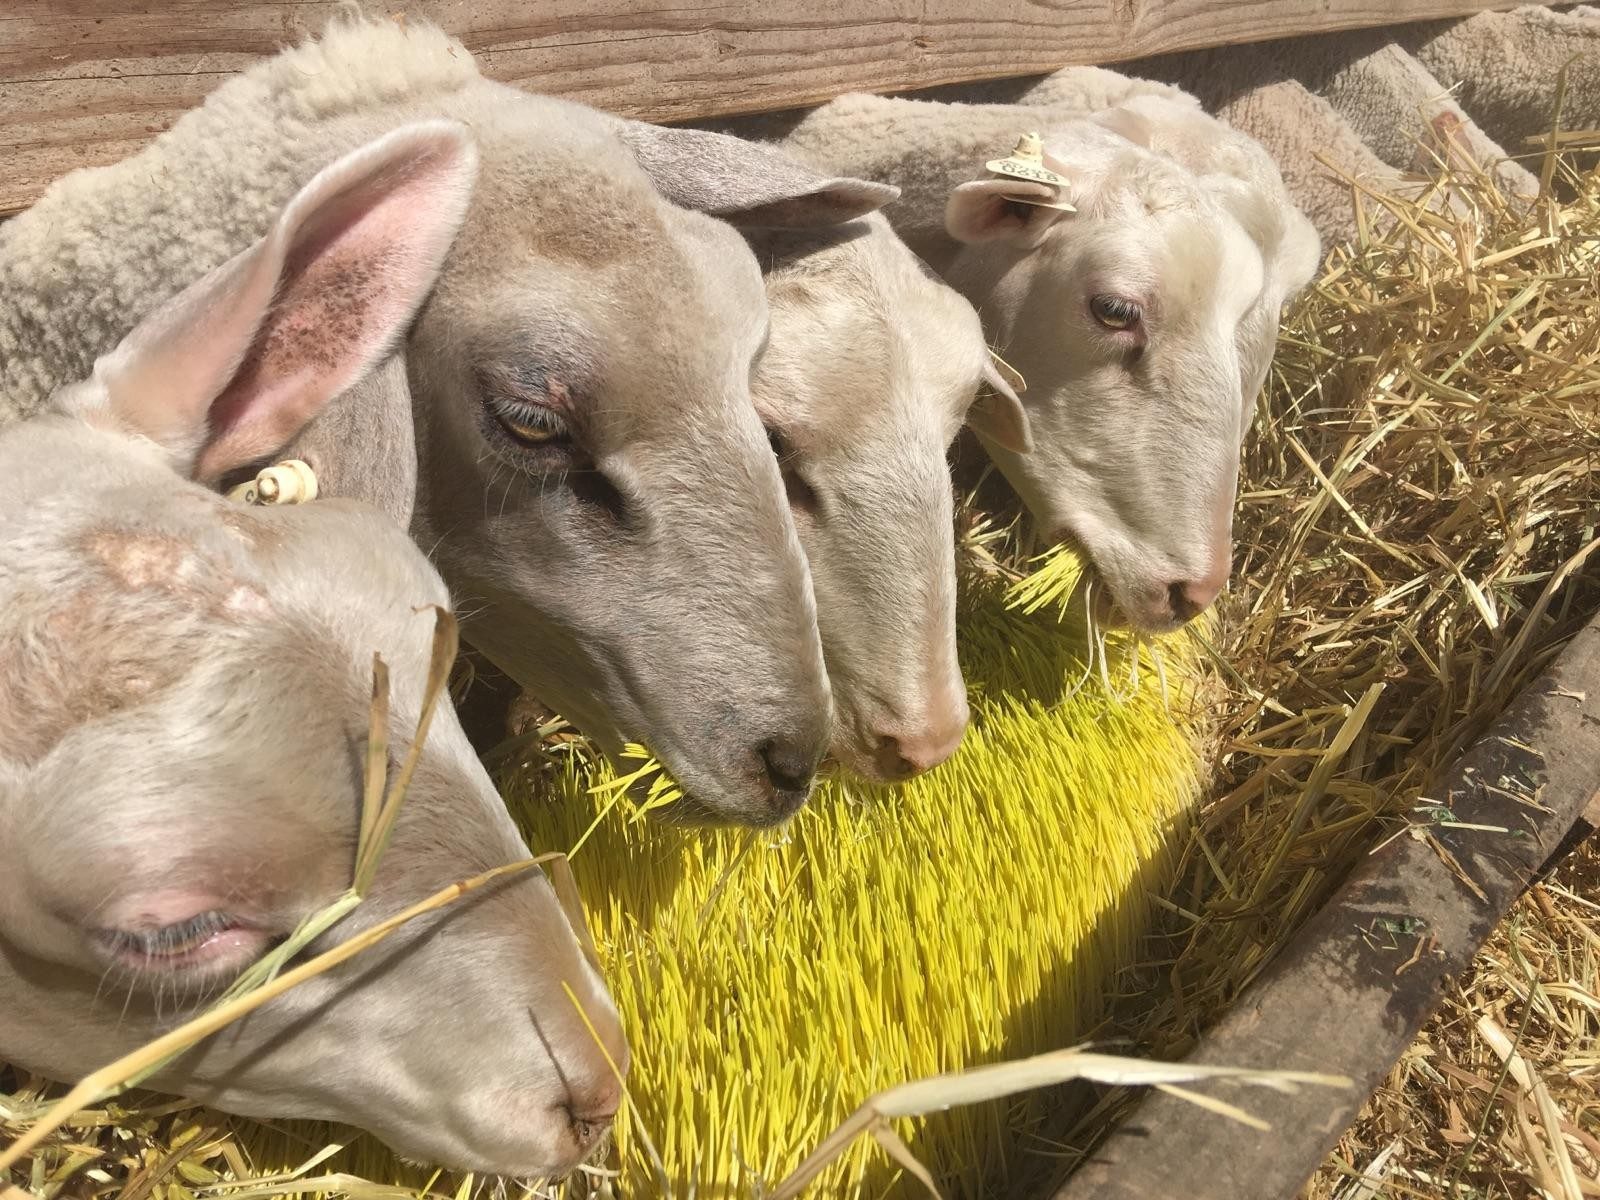 Mario Daccarett says the sprouted barley seeds he grows inside shipping containers are sweet and keeps his sheep full for longer. Ezra David Romero/KQED